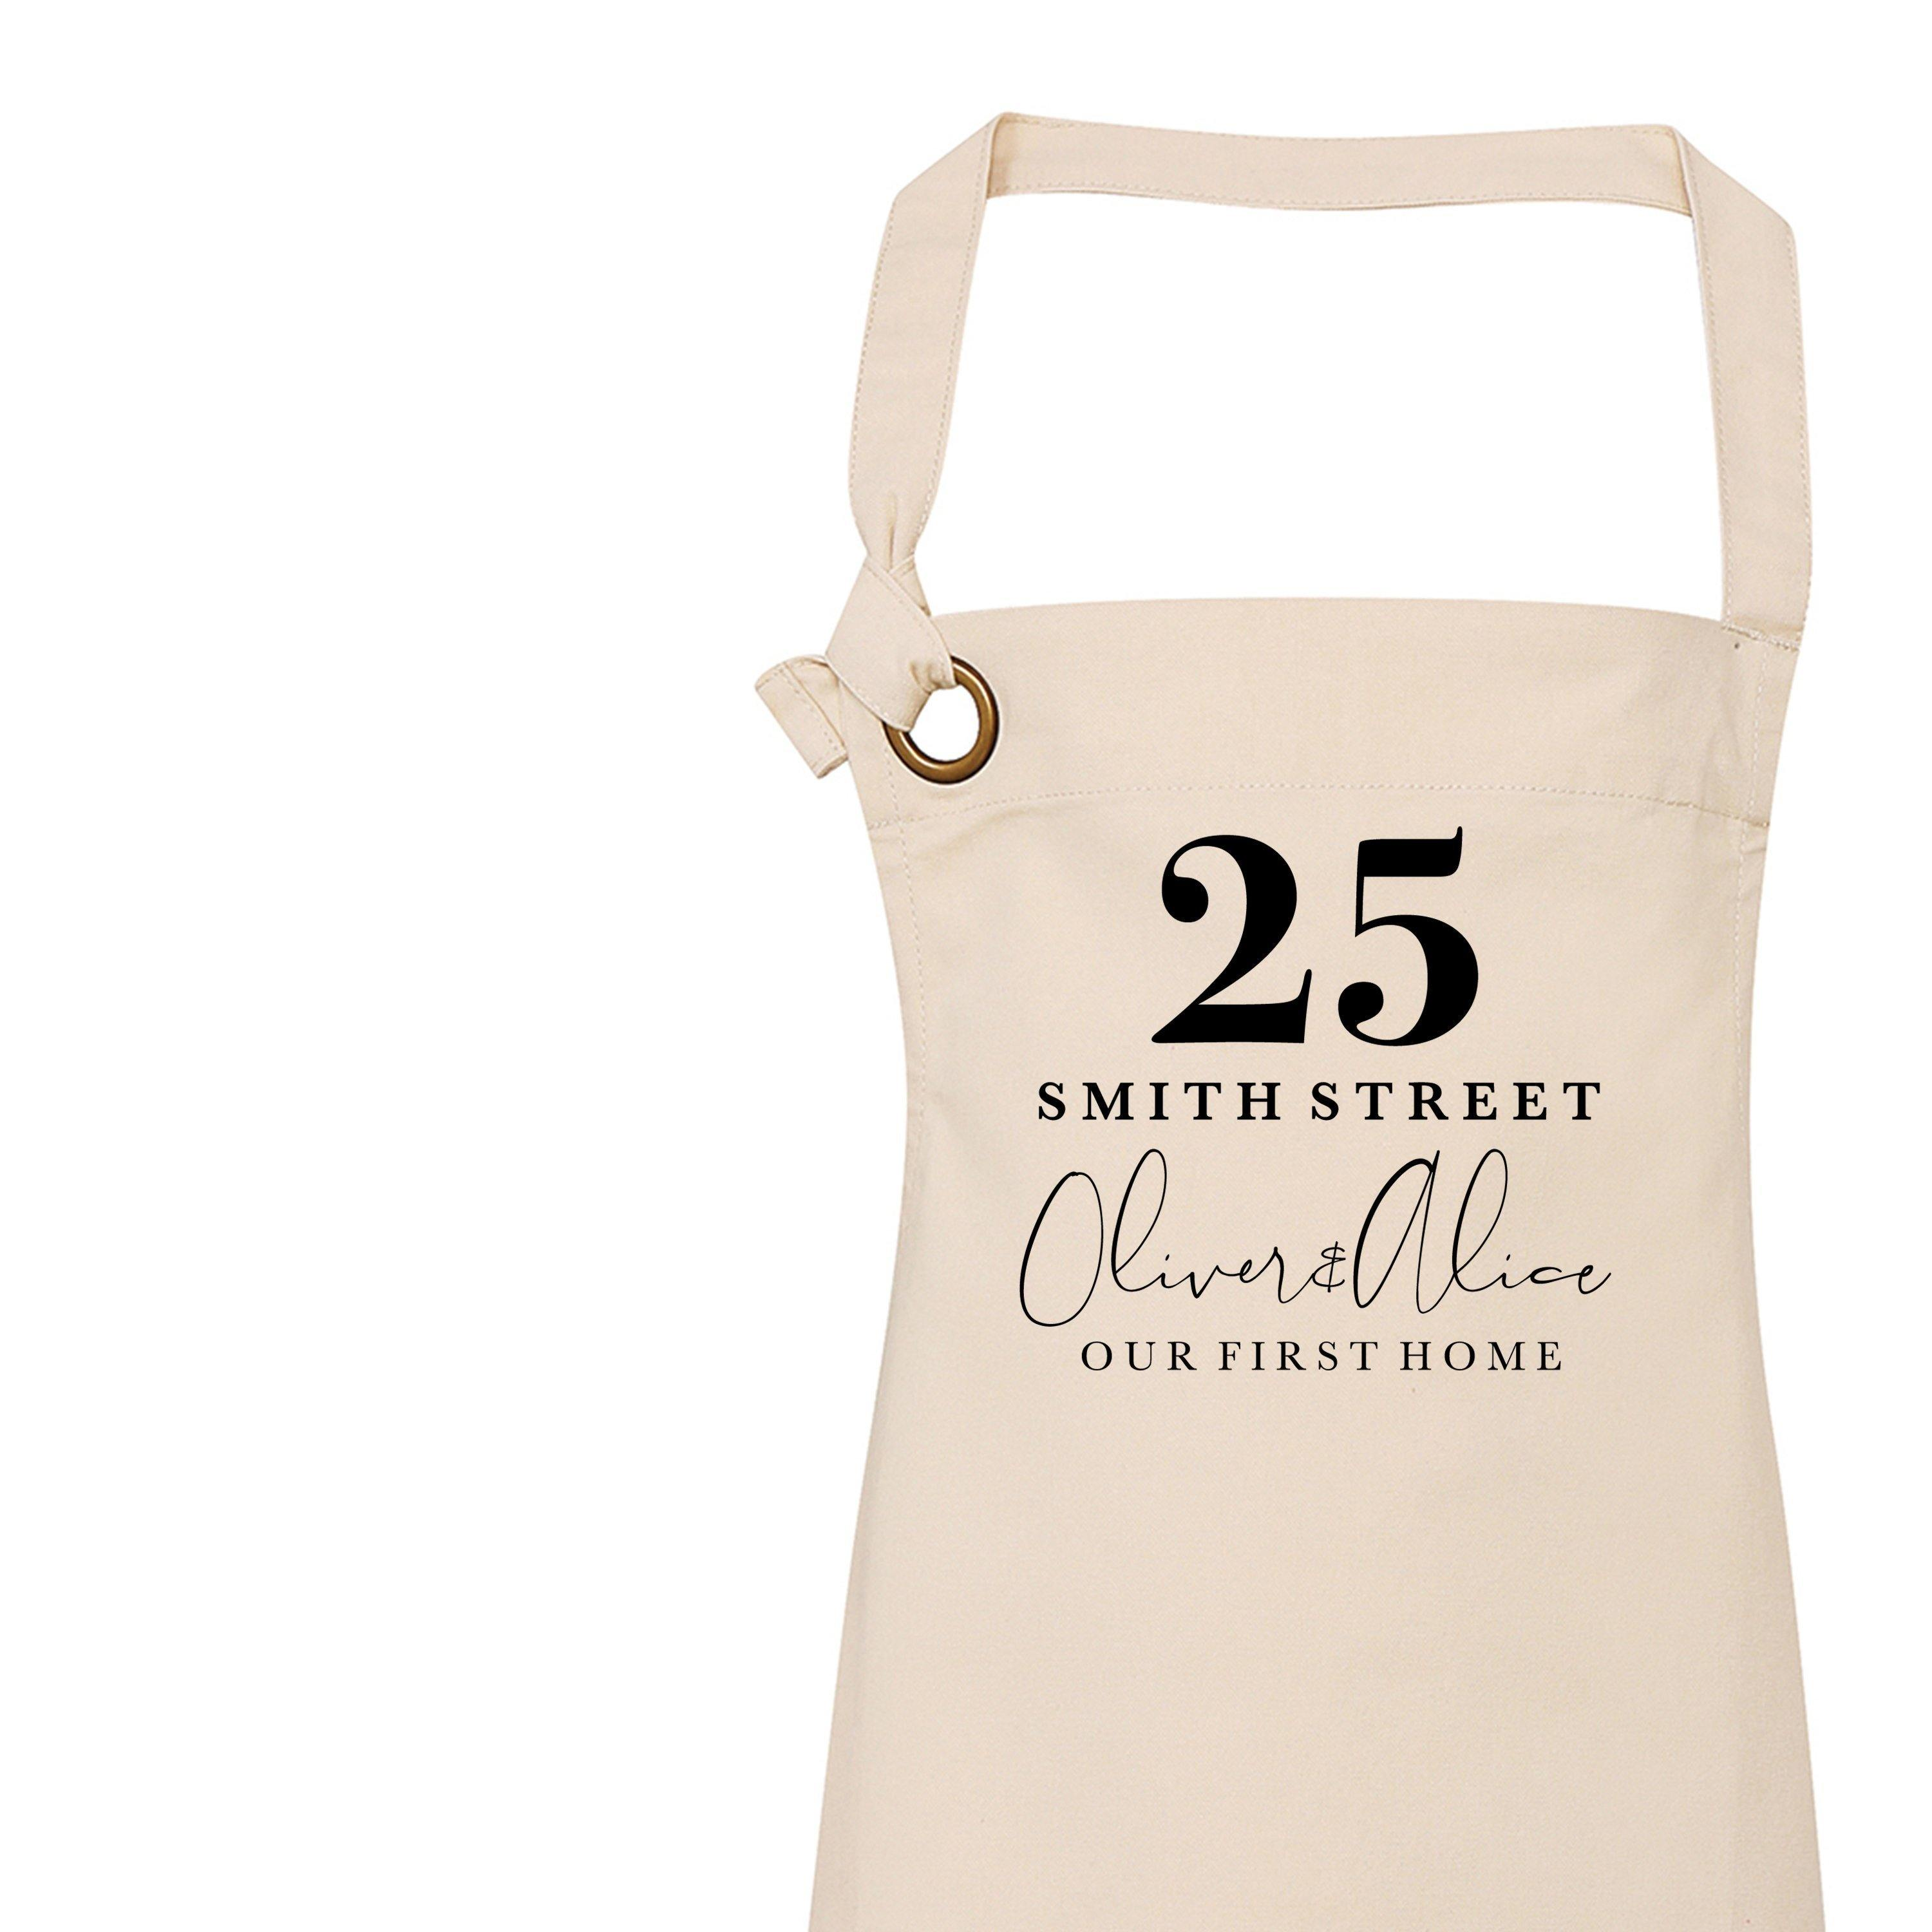 Personalised Apron New Home Gift Gift Ideas For House Warming Gift Ideas For Her Custom Apron Home Accessories Custom Kitchenware